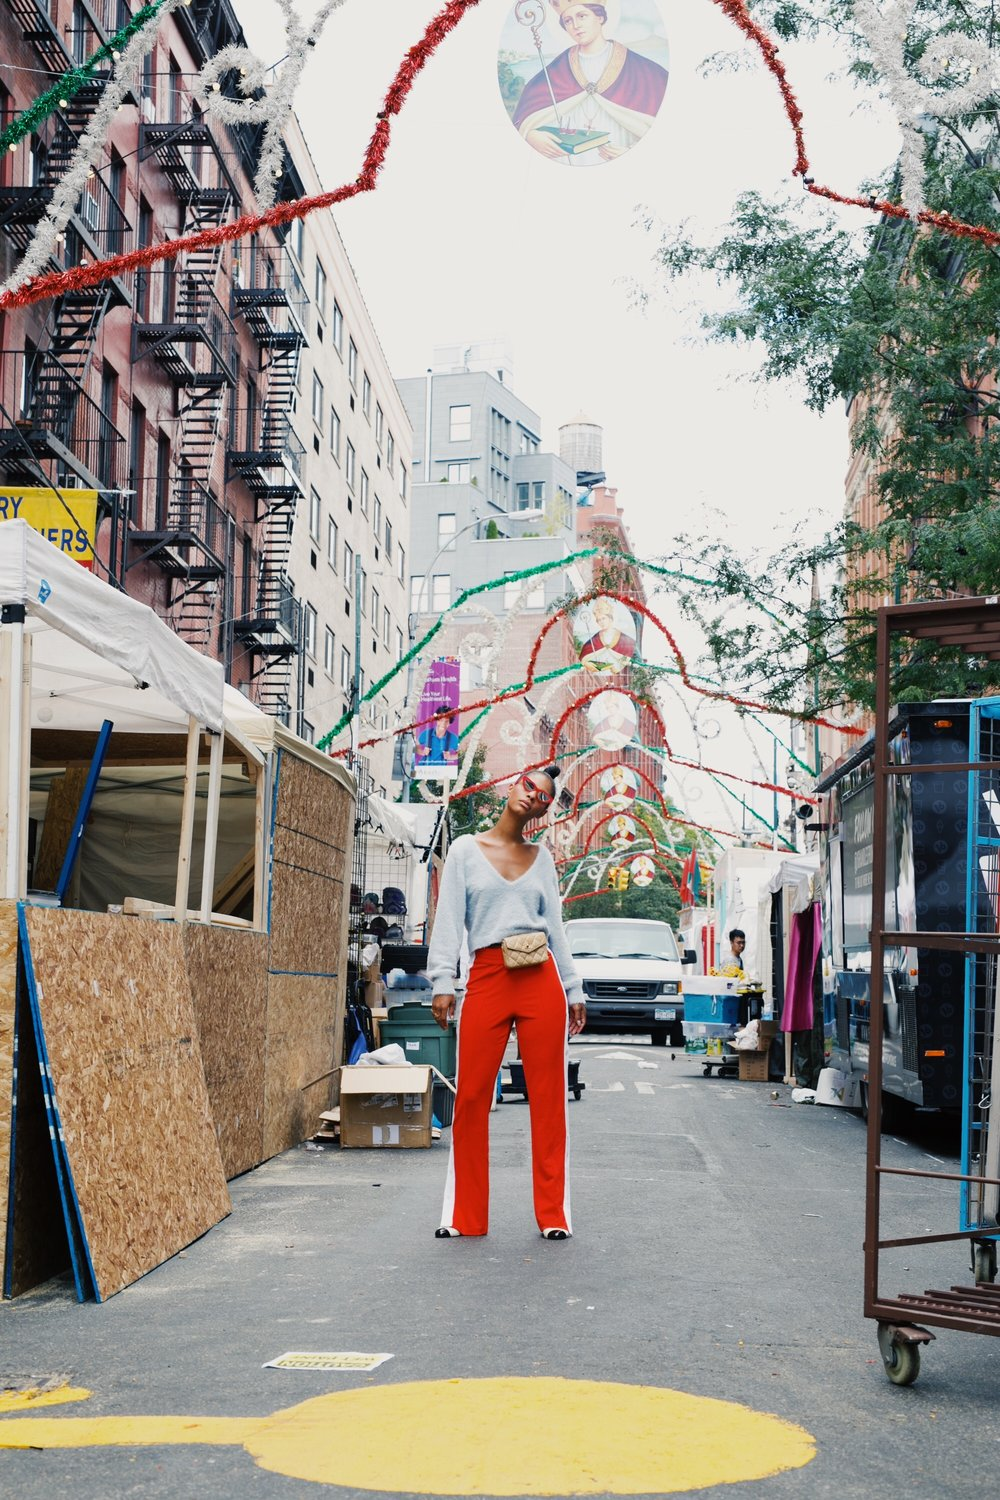 Claire Leana Millar in Nolita NYC wearing H&M Track pants, Chanel Slingbacks, Adam Selman The Last Lolita Sunglasses in Red, and a Vintage Cream Chanel Fanny Pack